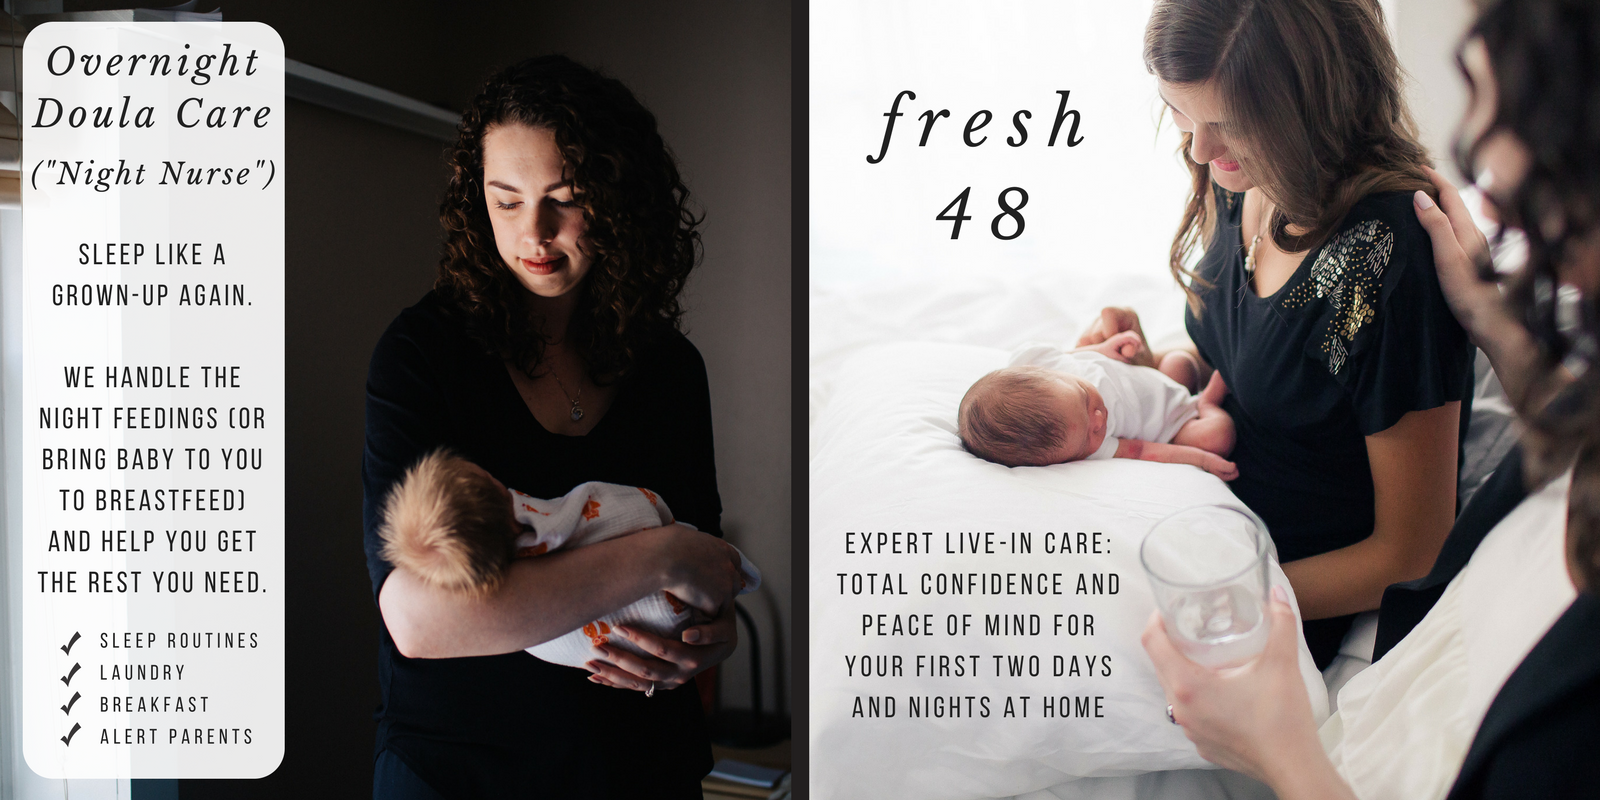 Overnight Doula Care/Best Night Nurses in Wichita! *Night nurse or night nanny is a common term for a night doula. Please note that unless specifically mentioned, doulas are nonmedical support persons and are not necessarily registered nurses.